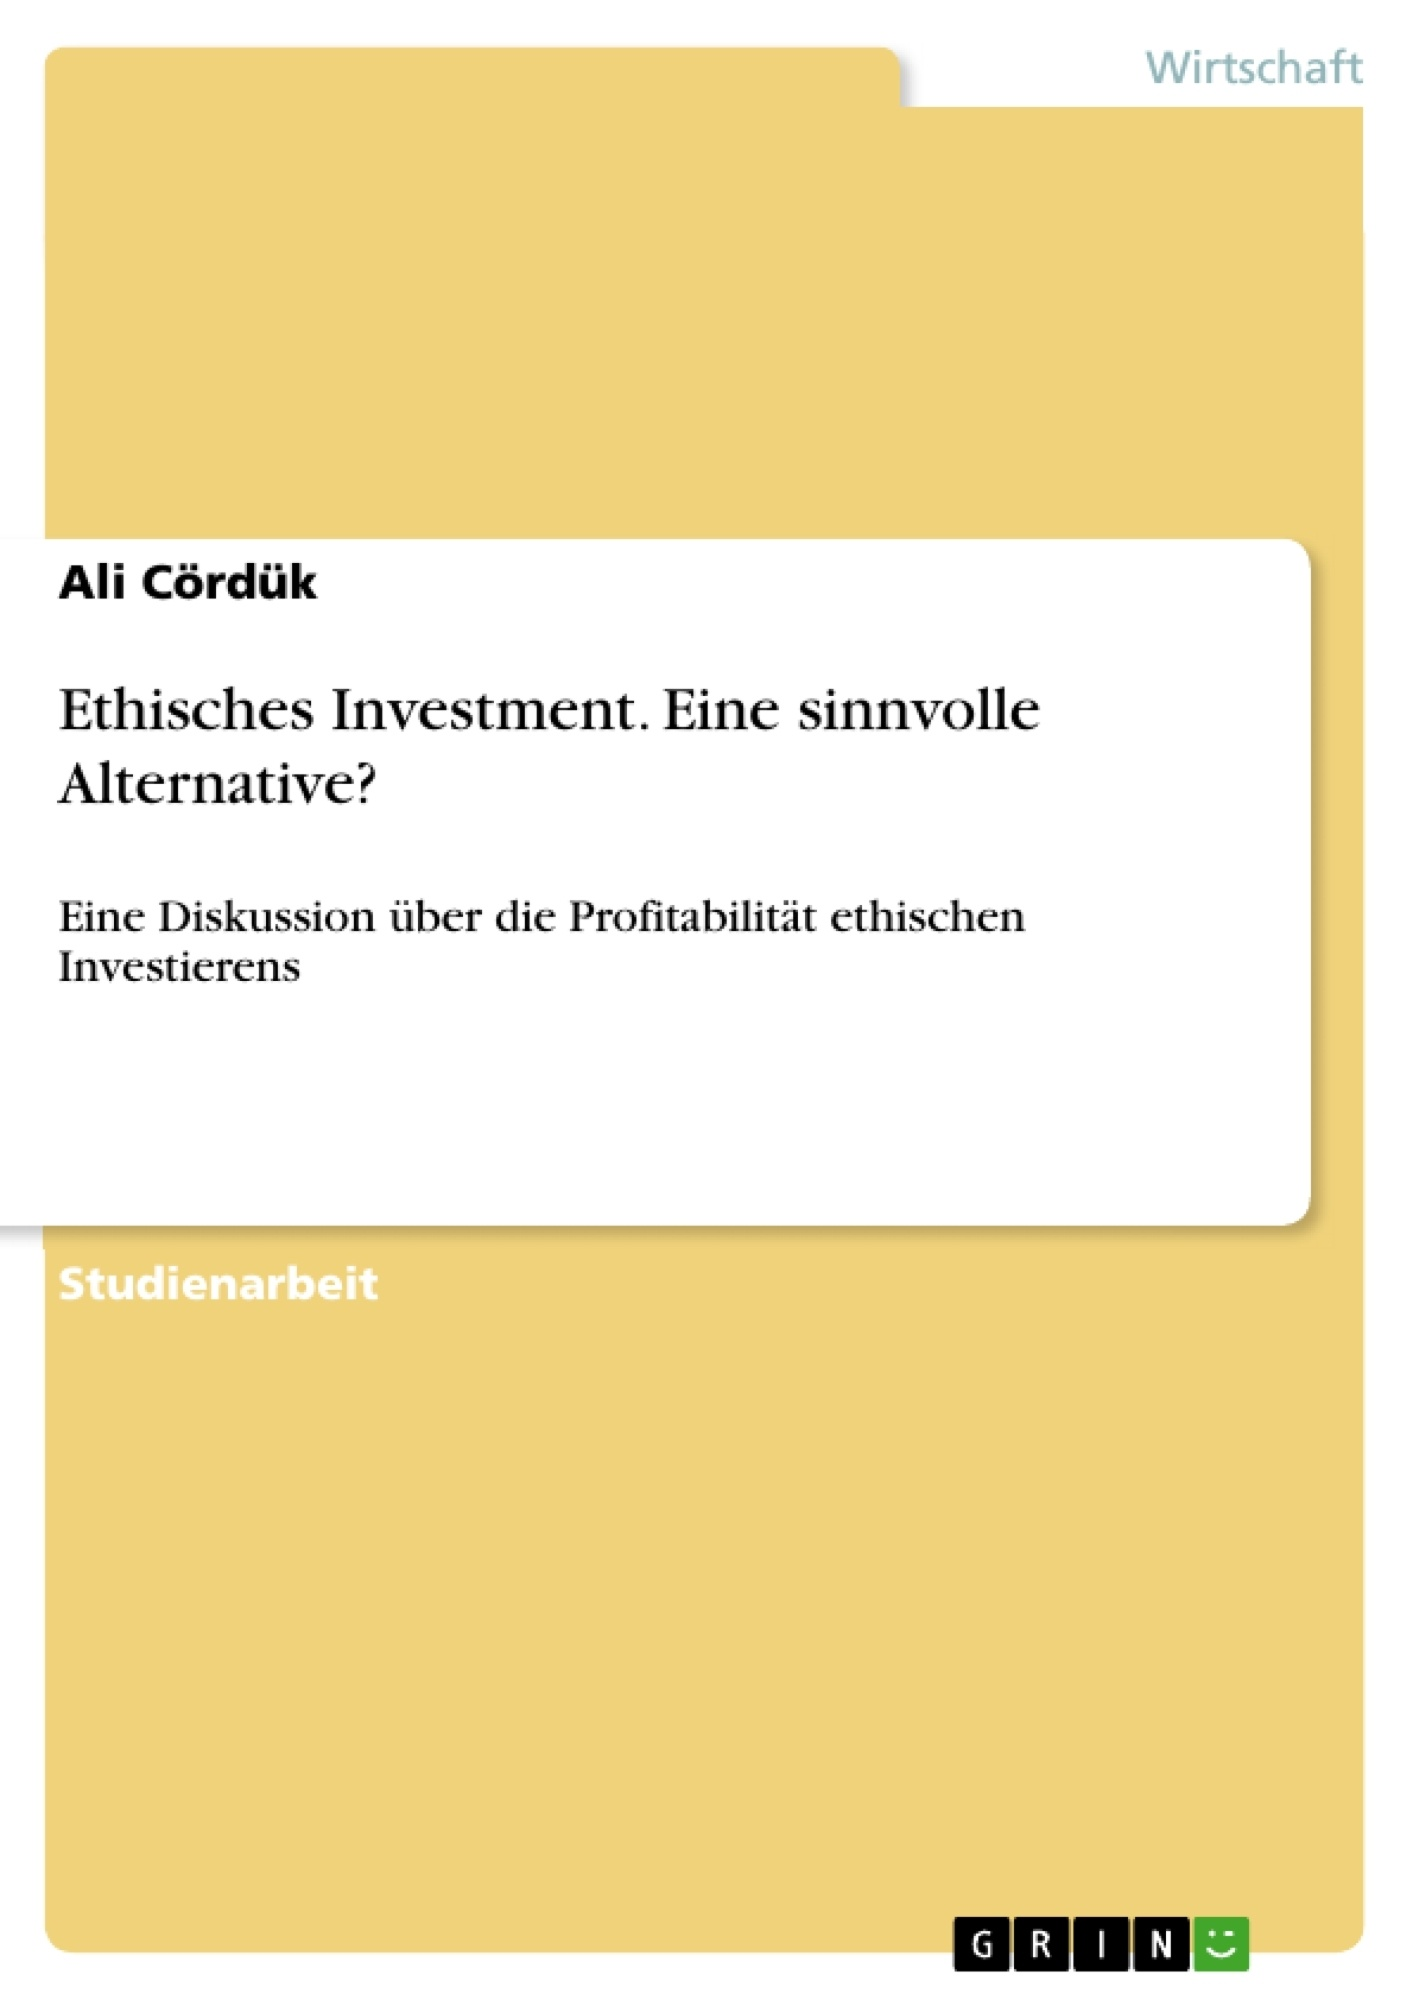 Titel: Ethisches Investment. Eine sinnvolle Alternative?